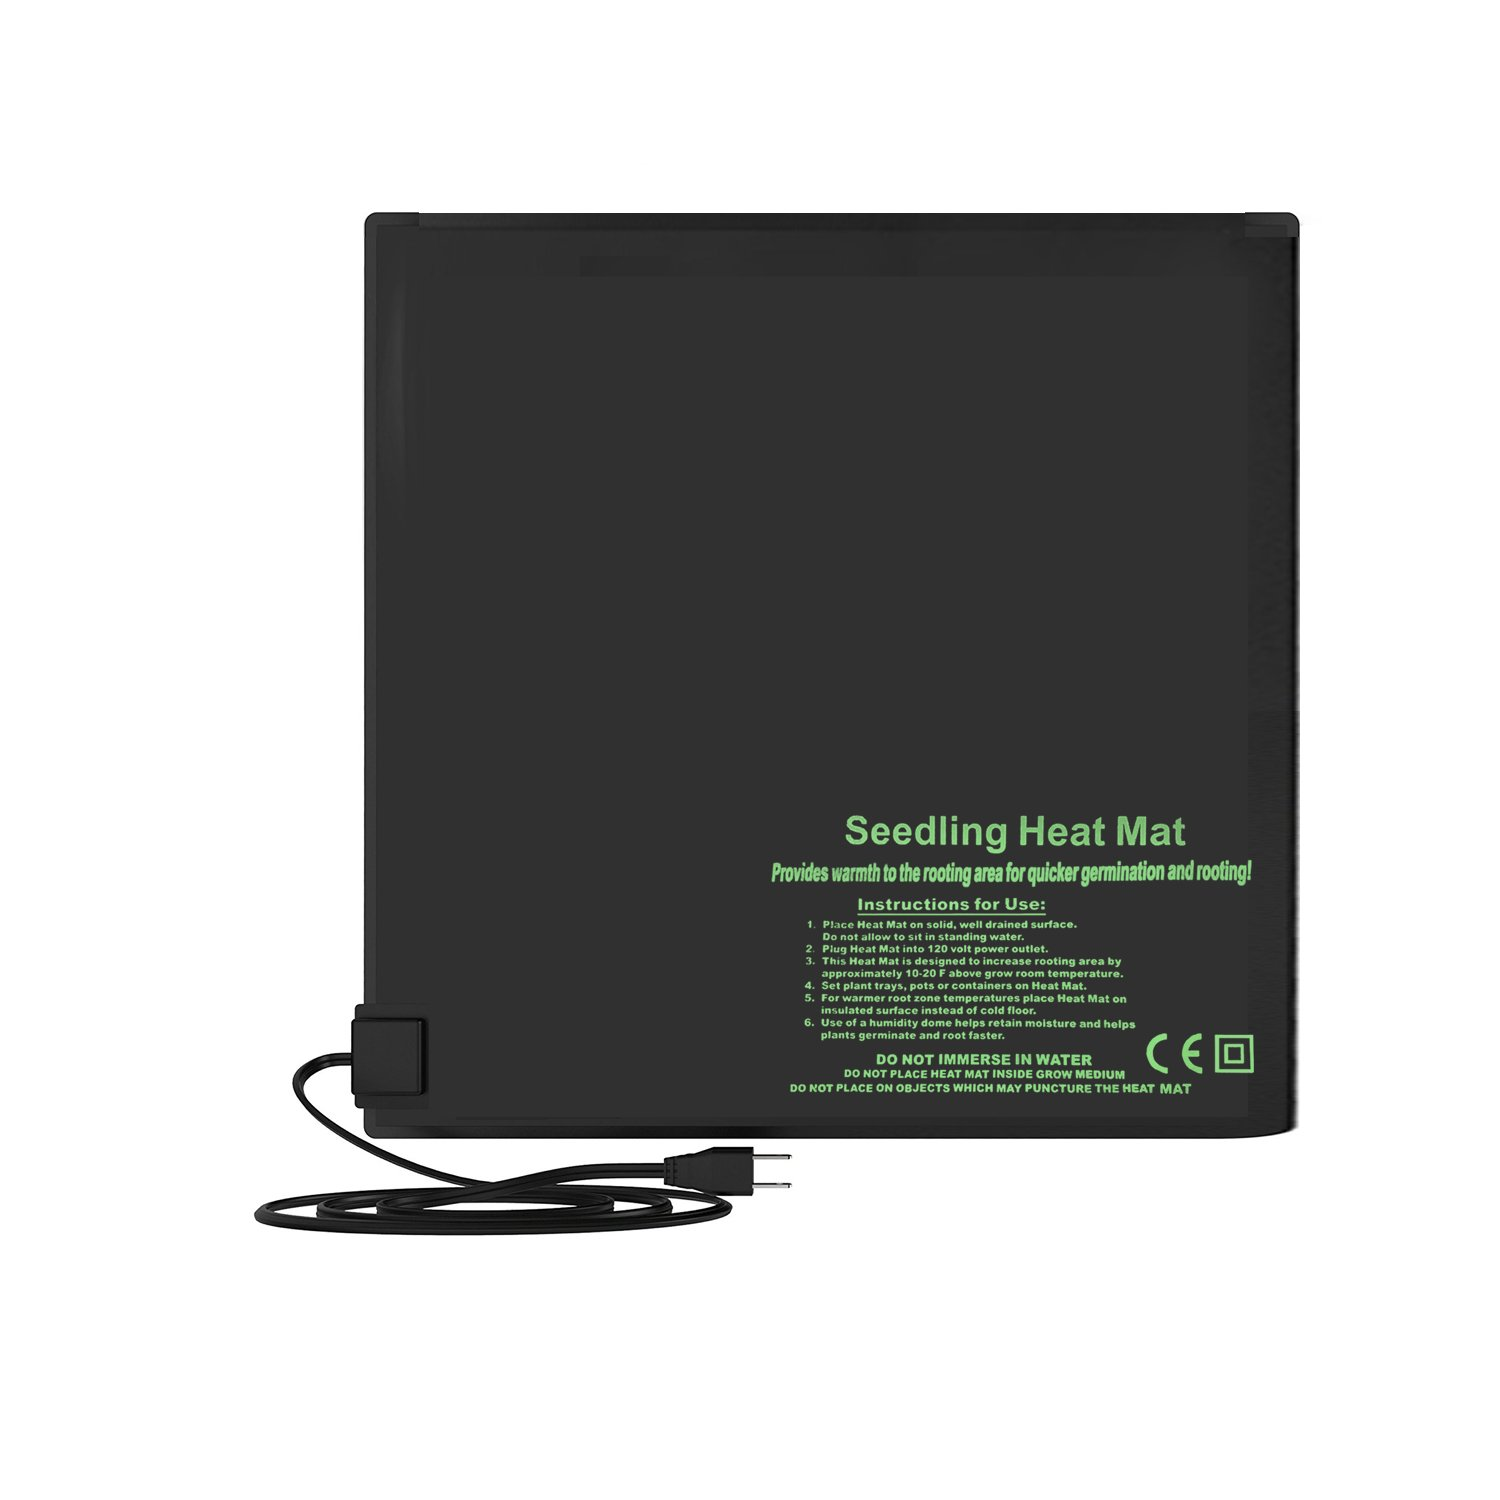 """BloomGrow 20""""x10"""" 20""""x20"""" 48""""x20"""" Seed Starter Pad Germination Propagation Clone Seedling Heat Mat (20""""x20"""") by BloomGrow (Image #3)"""